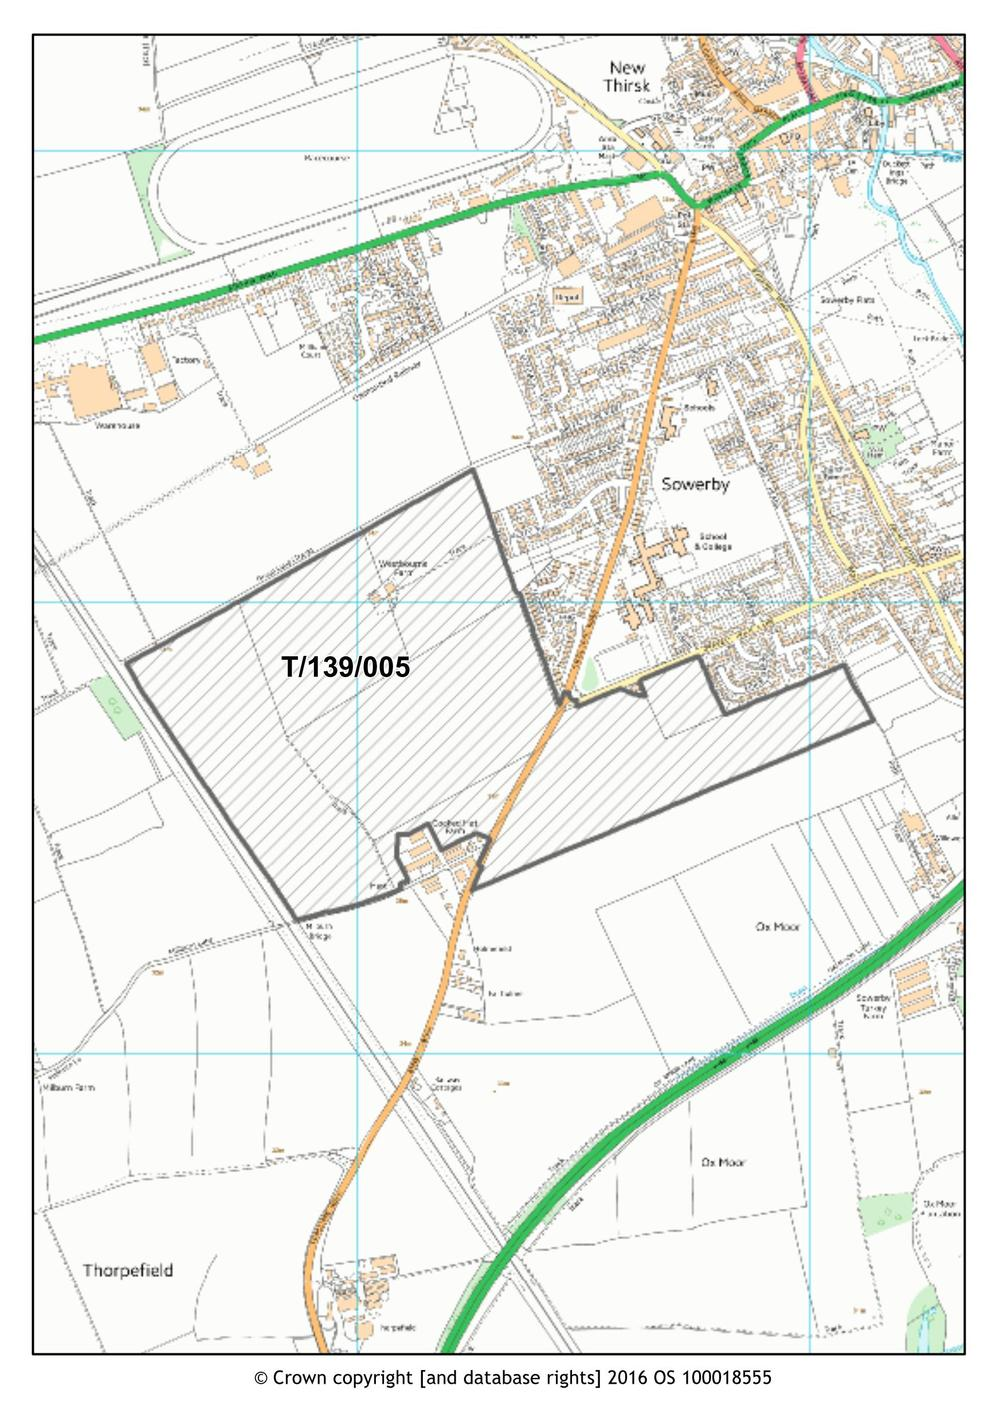 Hambleton District Council Preferred Options Consultation Part 2 Thirsk Sub Area 3 Thirsk With Sowerby